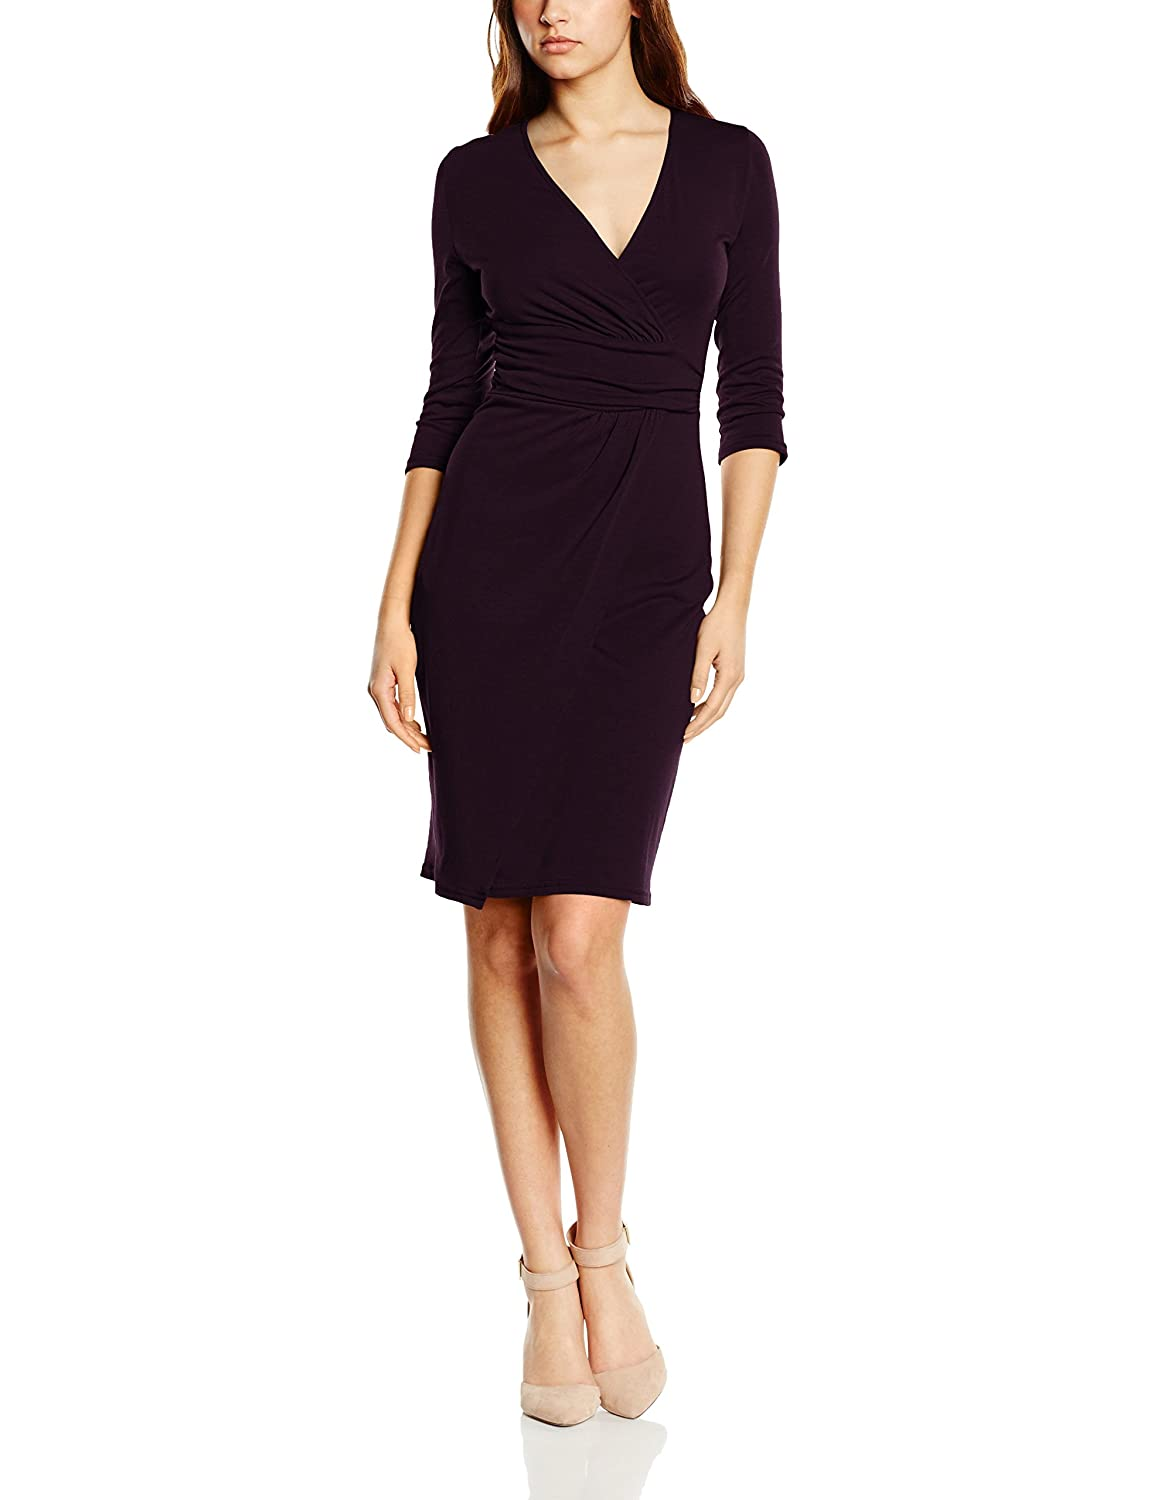 HotSquash Women's Ascot Mock-Wrap Dress